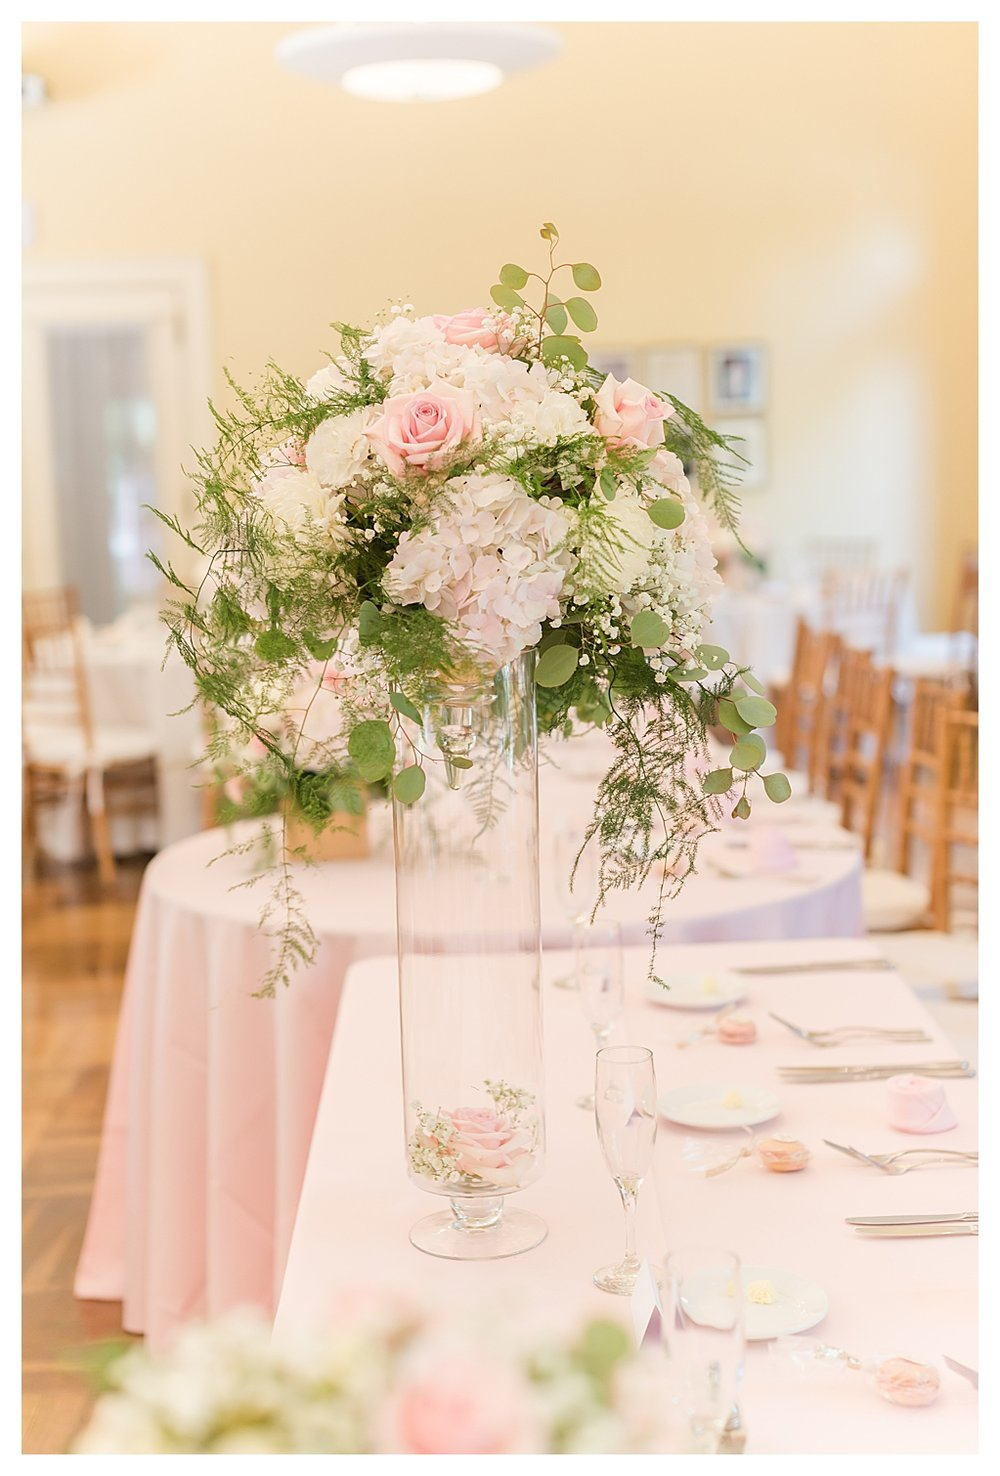 Wedding Photography Wedding Reception Detail Photos What Brides Forget in the Wedding Day Timeline_1284.jpg